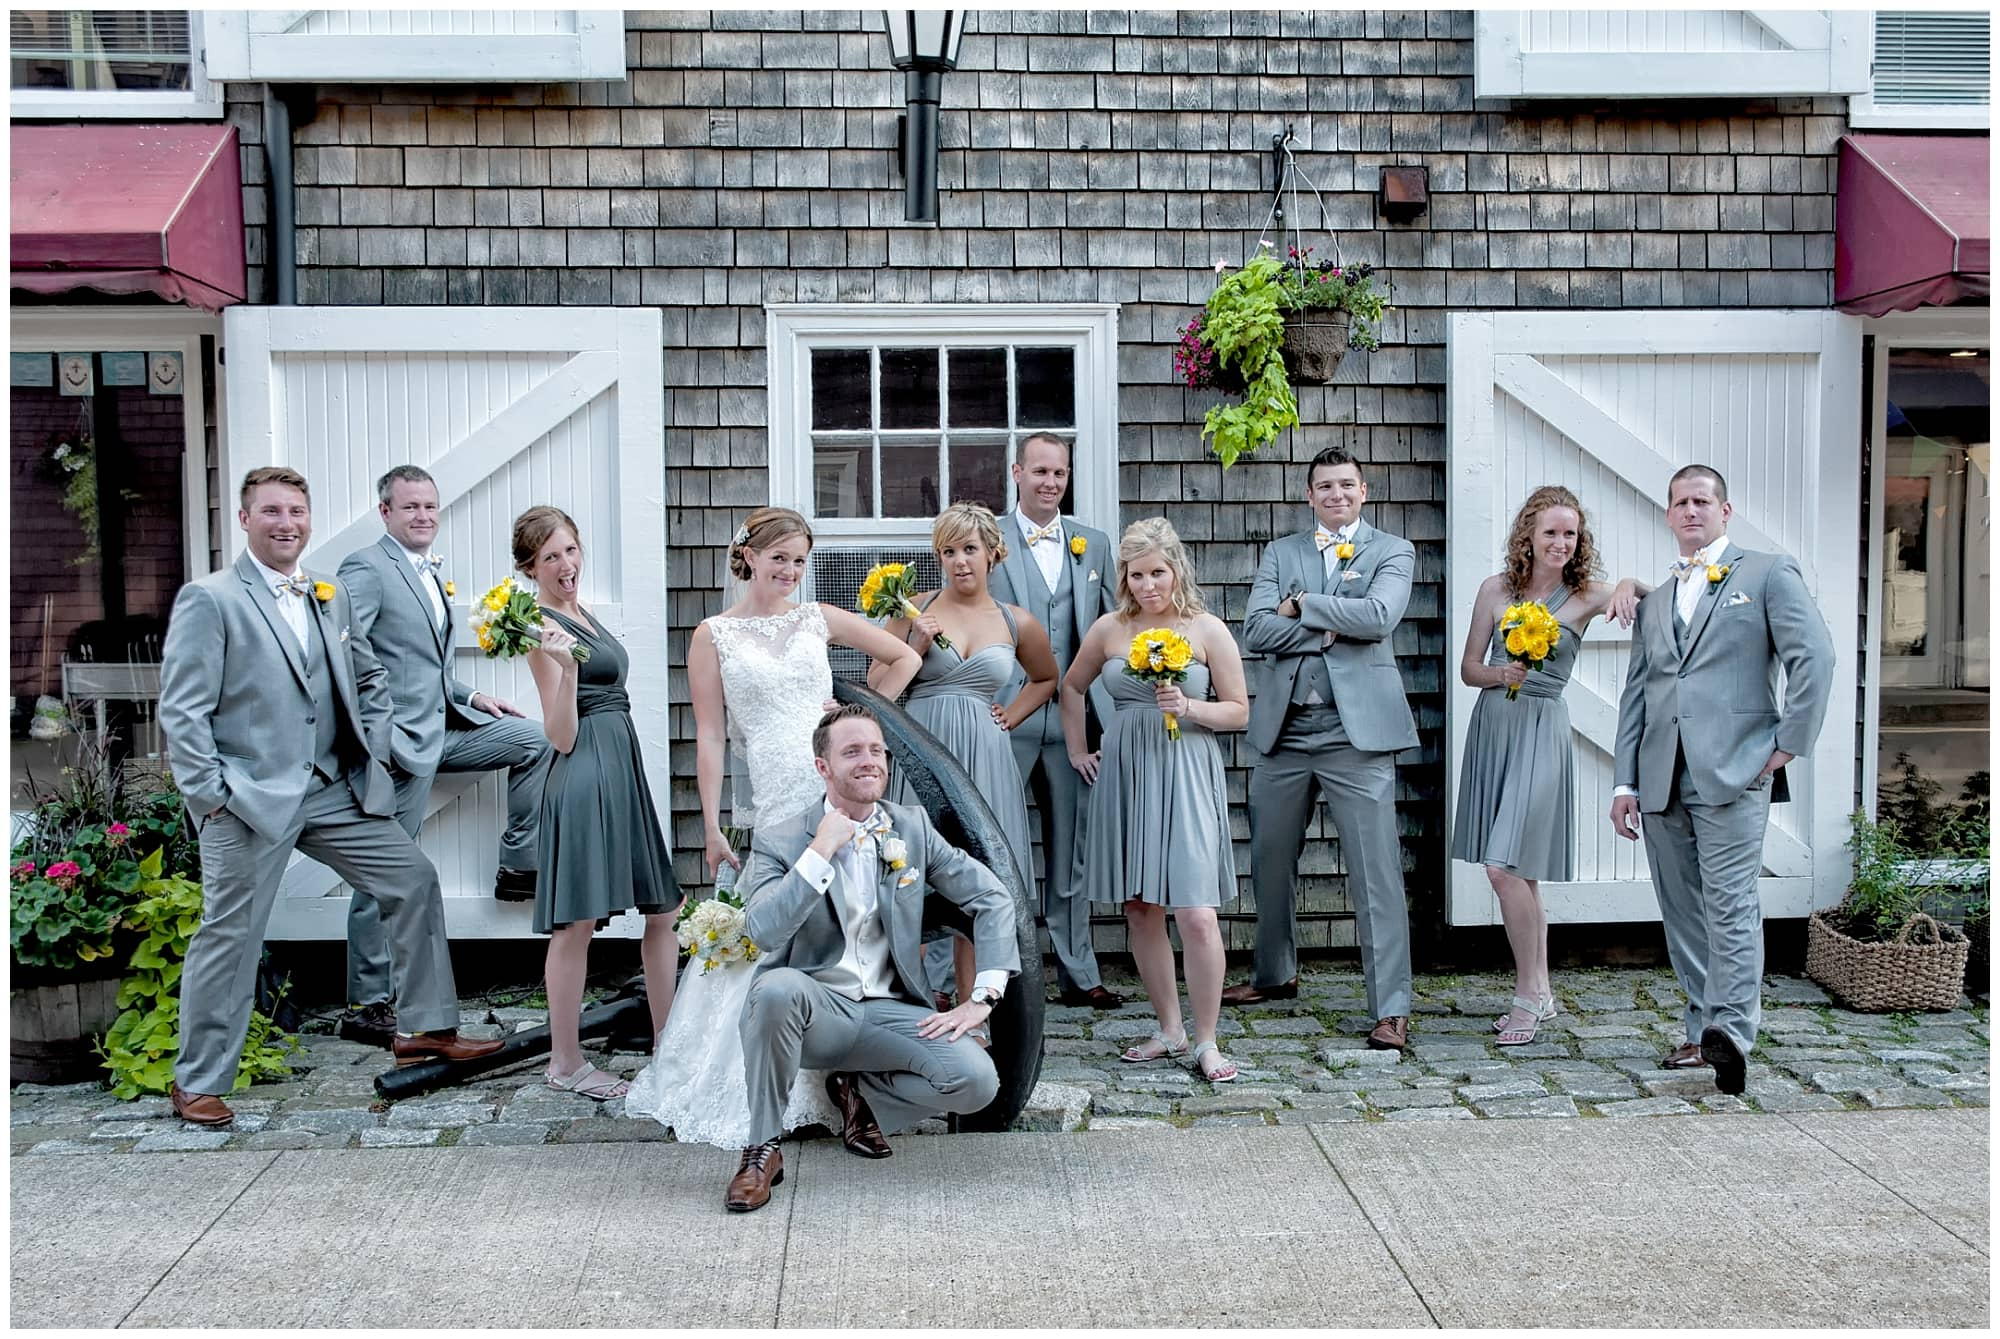 The bride and groom pose for wedding photos with their wedding party in the Historic Properties in Halifax, Nova Scotia.